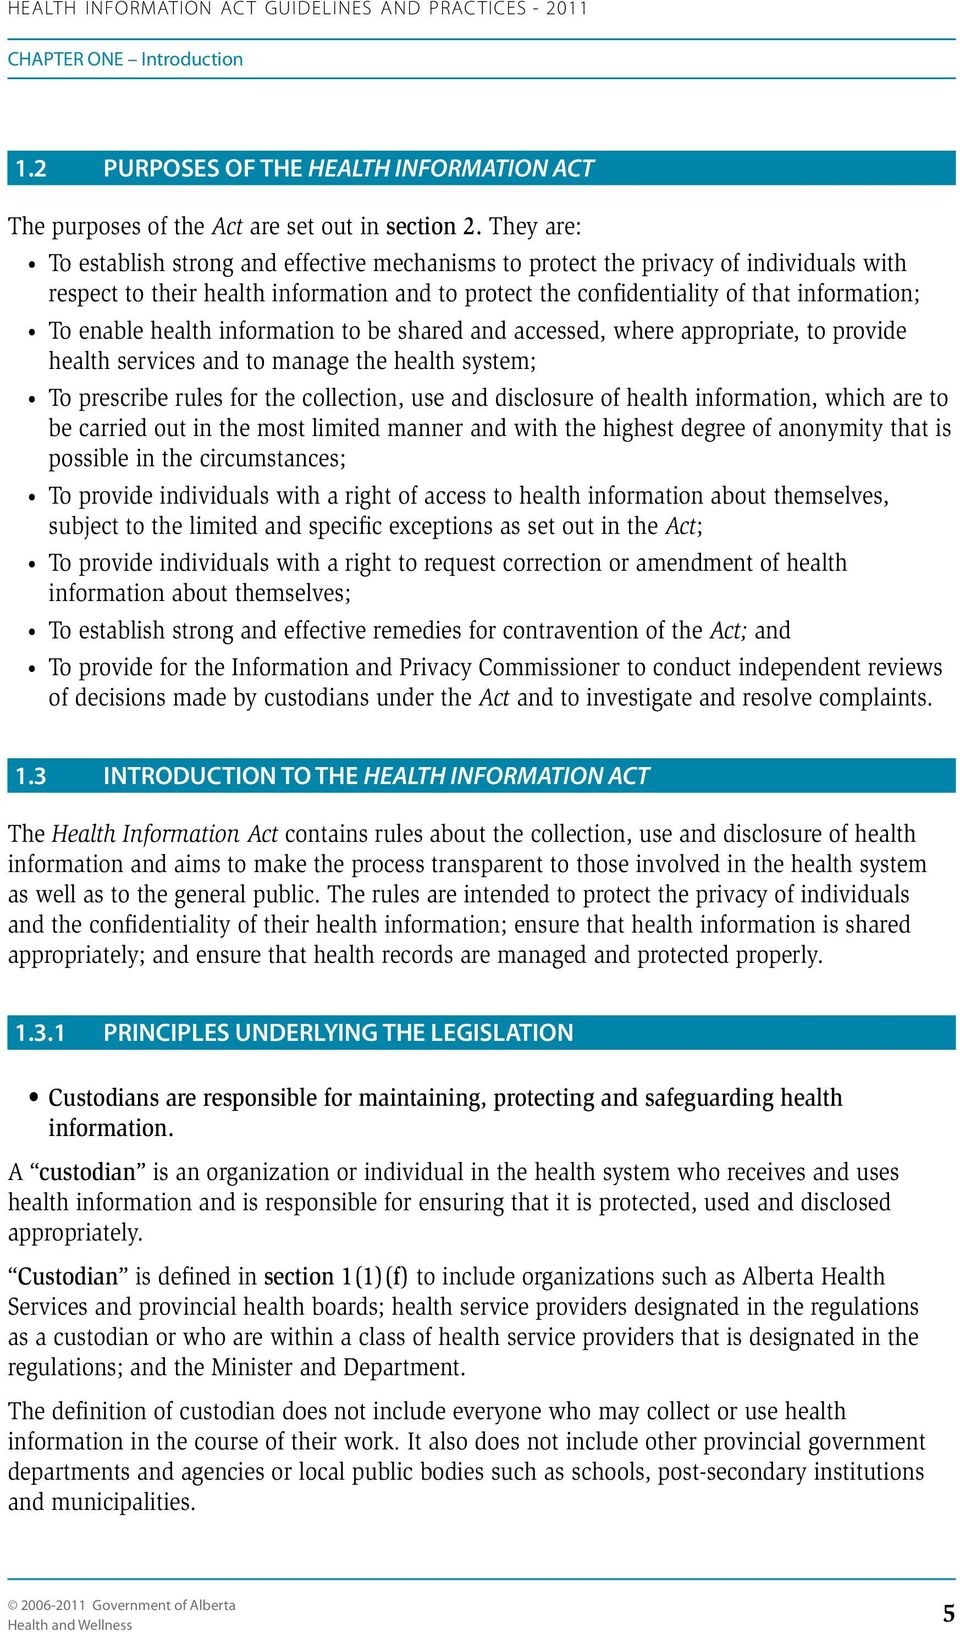 health information to be shared and accessed, where appropriate, to provide health services and to manage the health system; To prescribe rules for the collection, use and disclosure of health